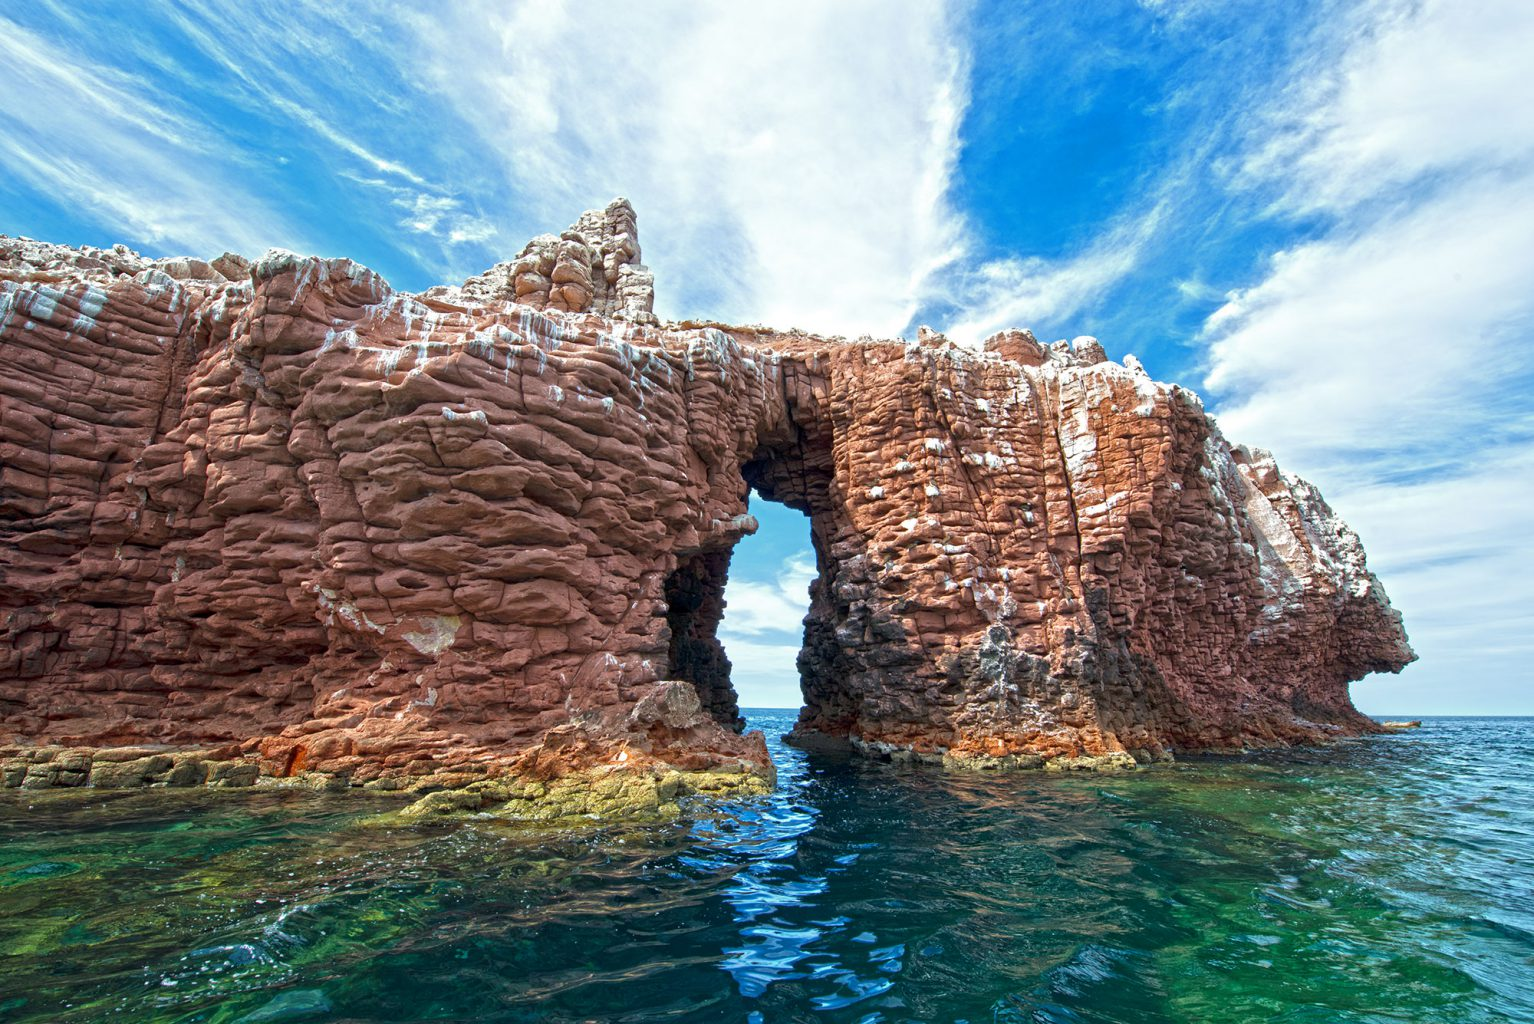 Los Islotes, Sea of Cortez, Mexico